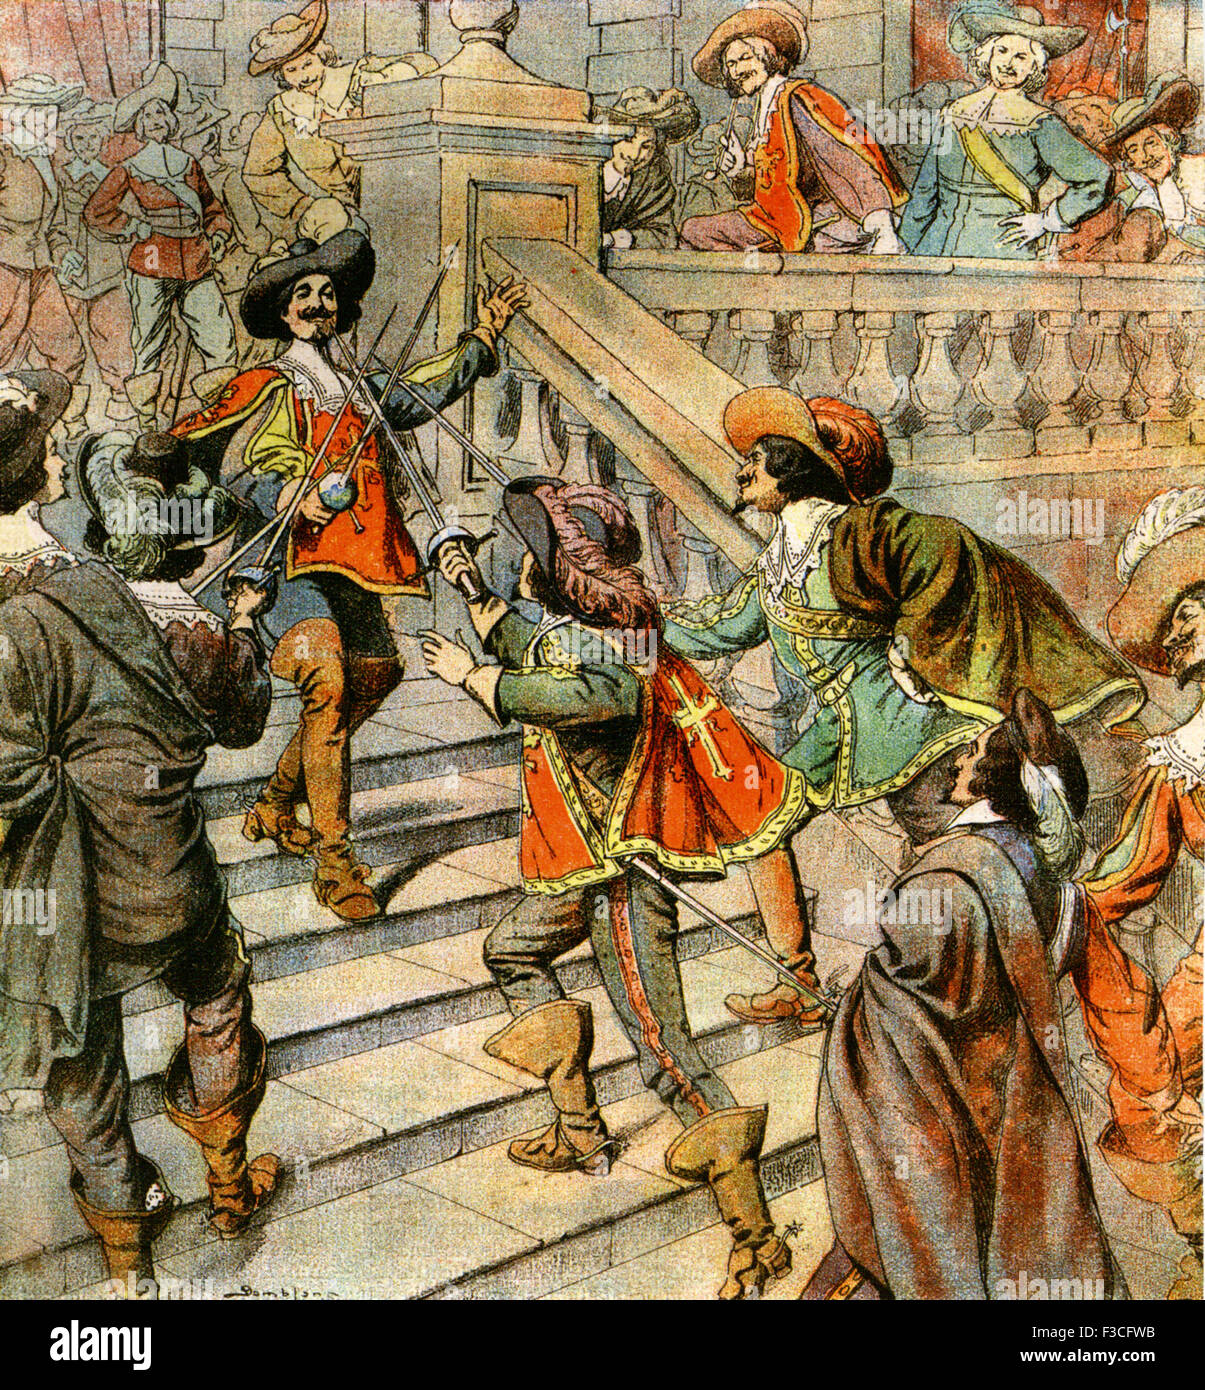 THE THREE MUSKETEERS  Magazine illustration about 1905 of the characters from Alexander Dumas' novel - Stock Image